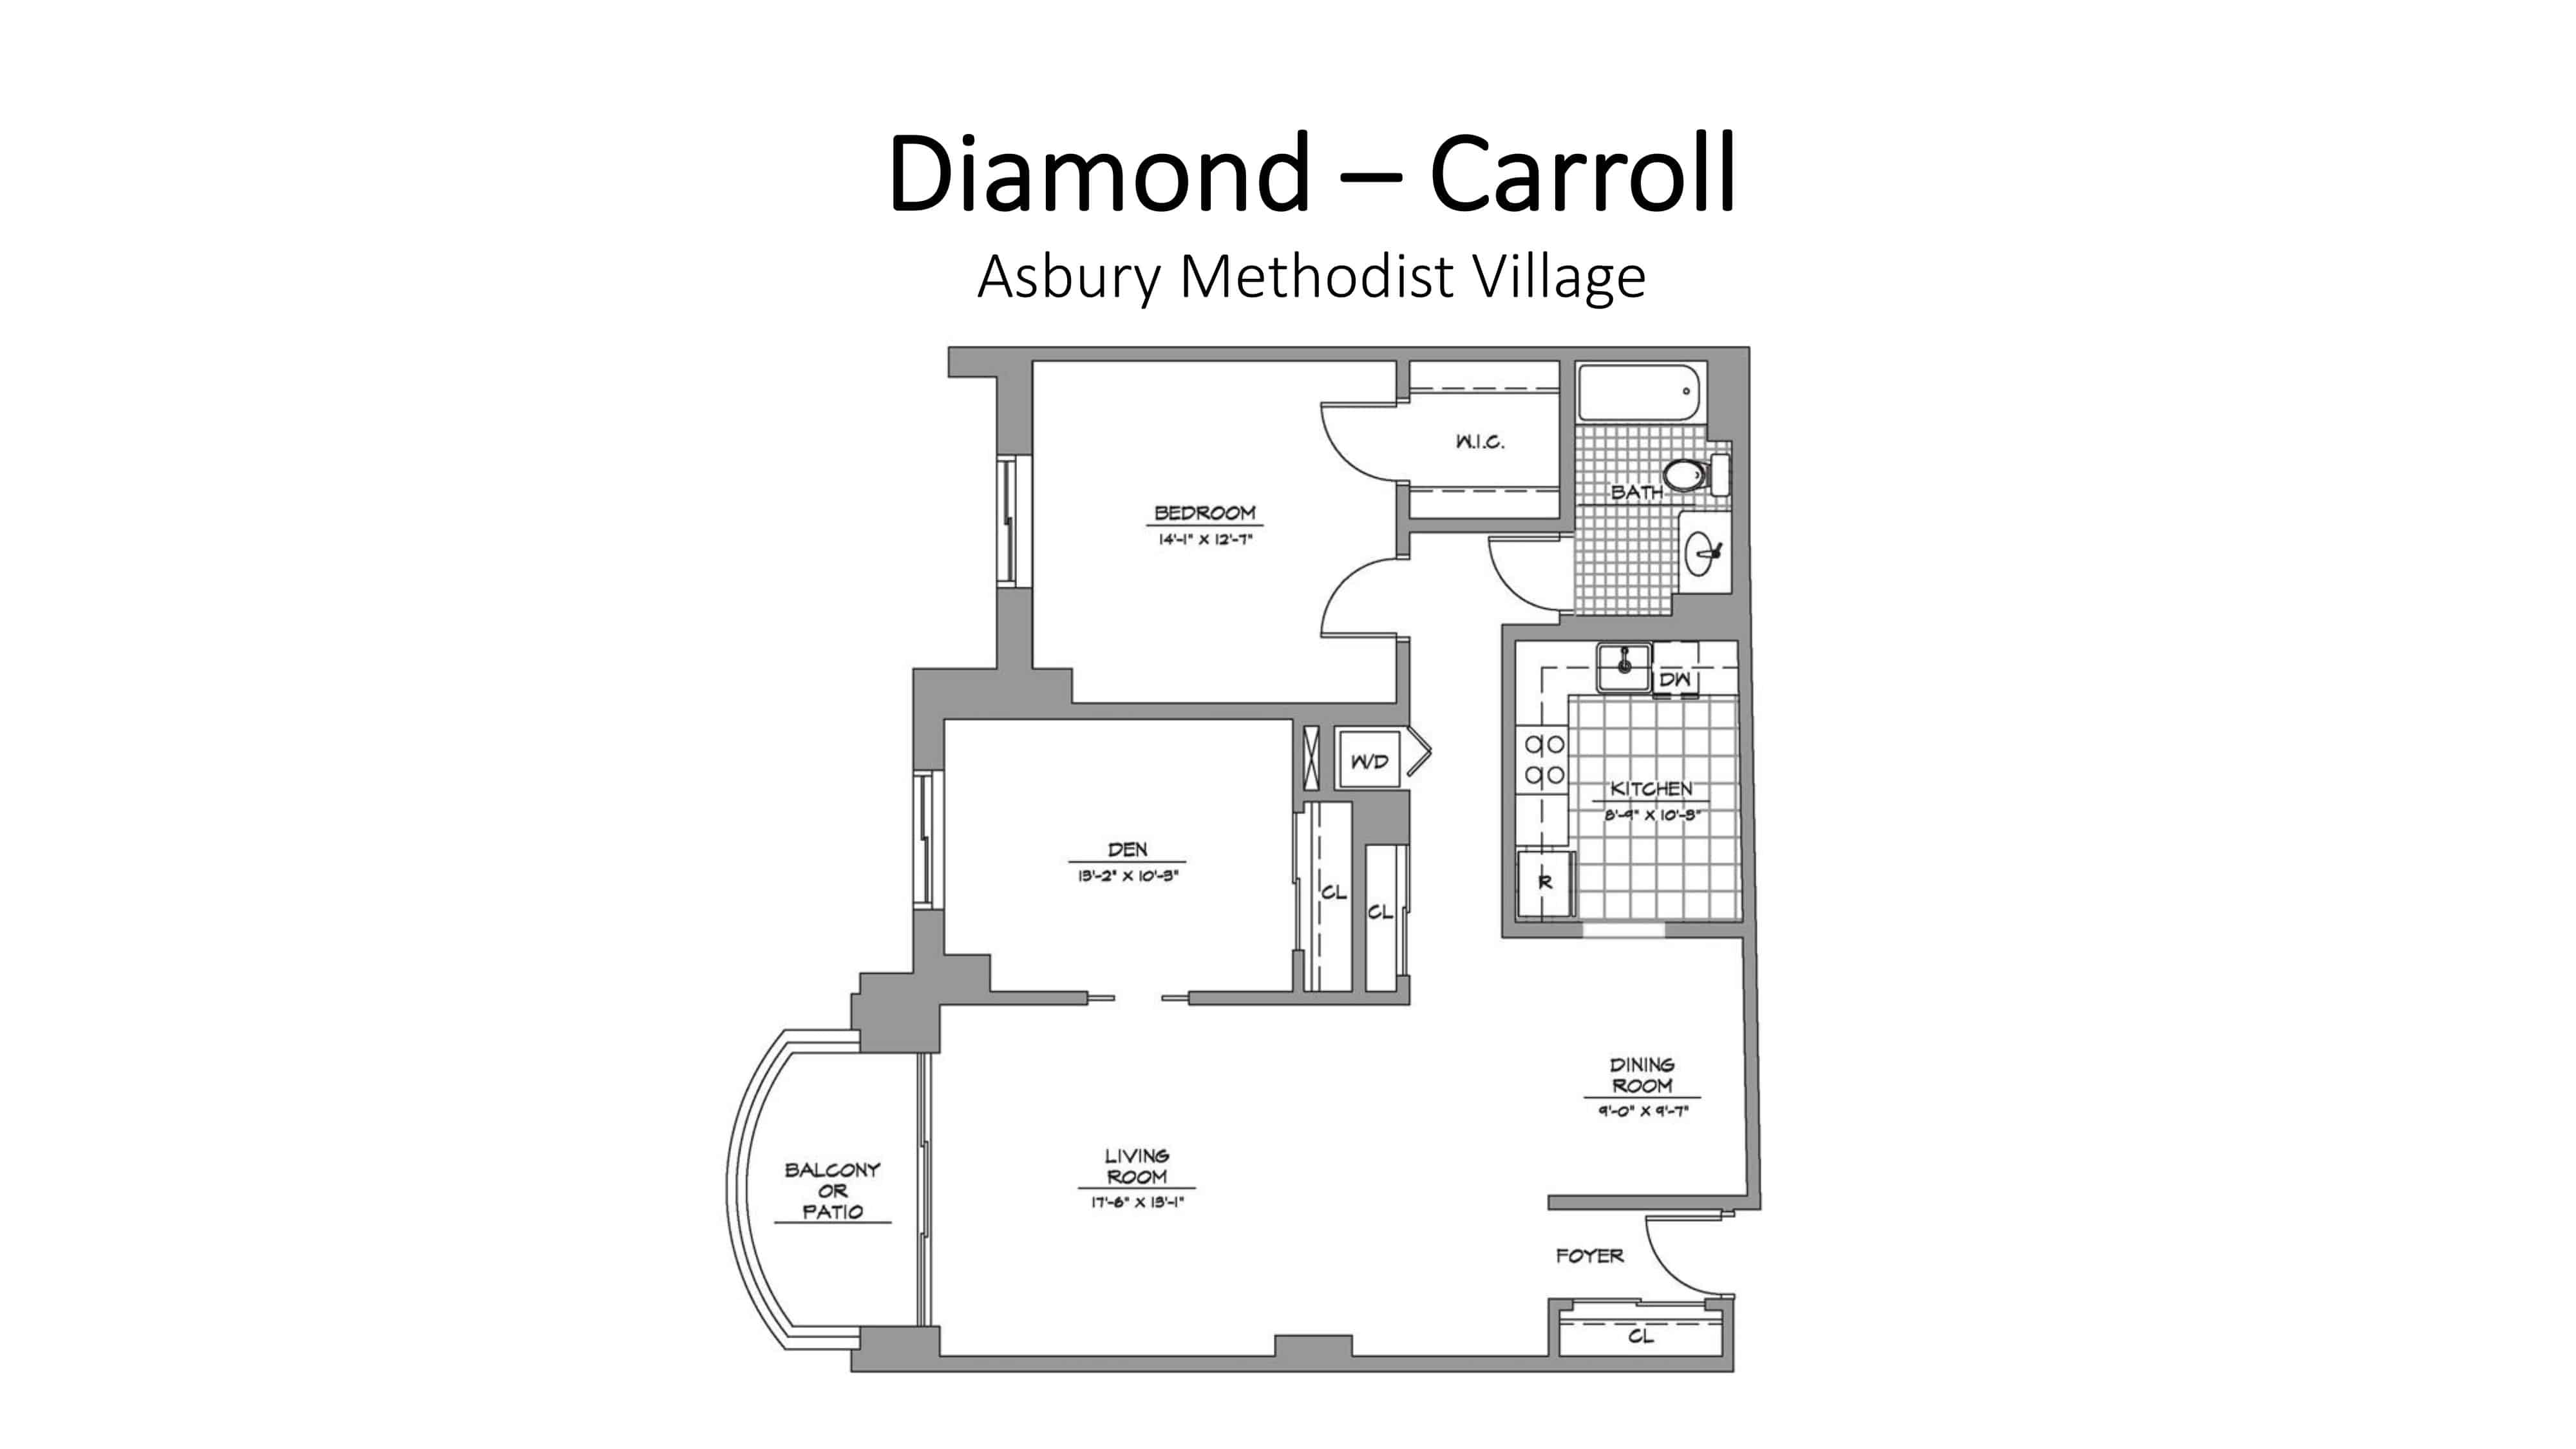 Asbury Methodist Village Diamond - Carroll